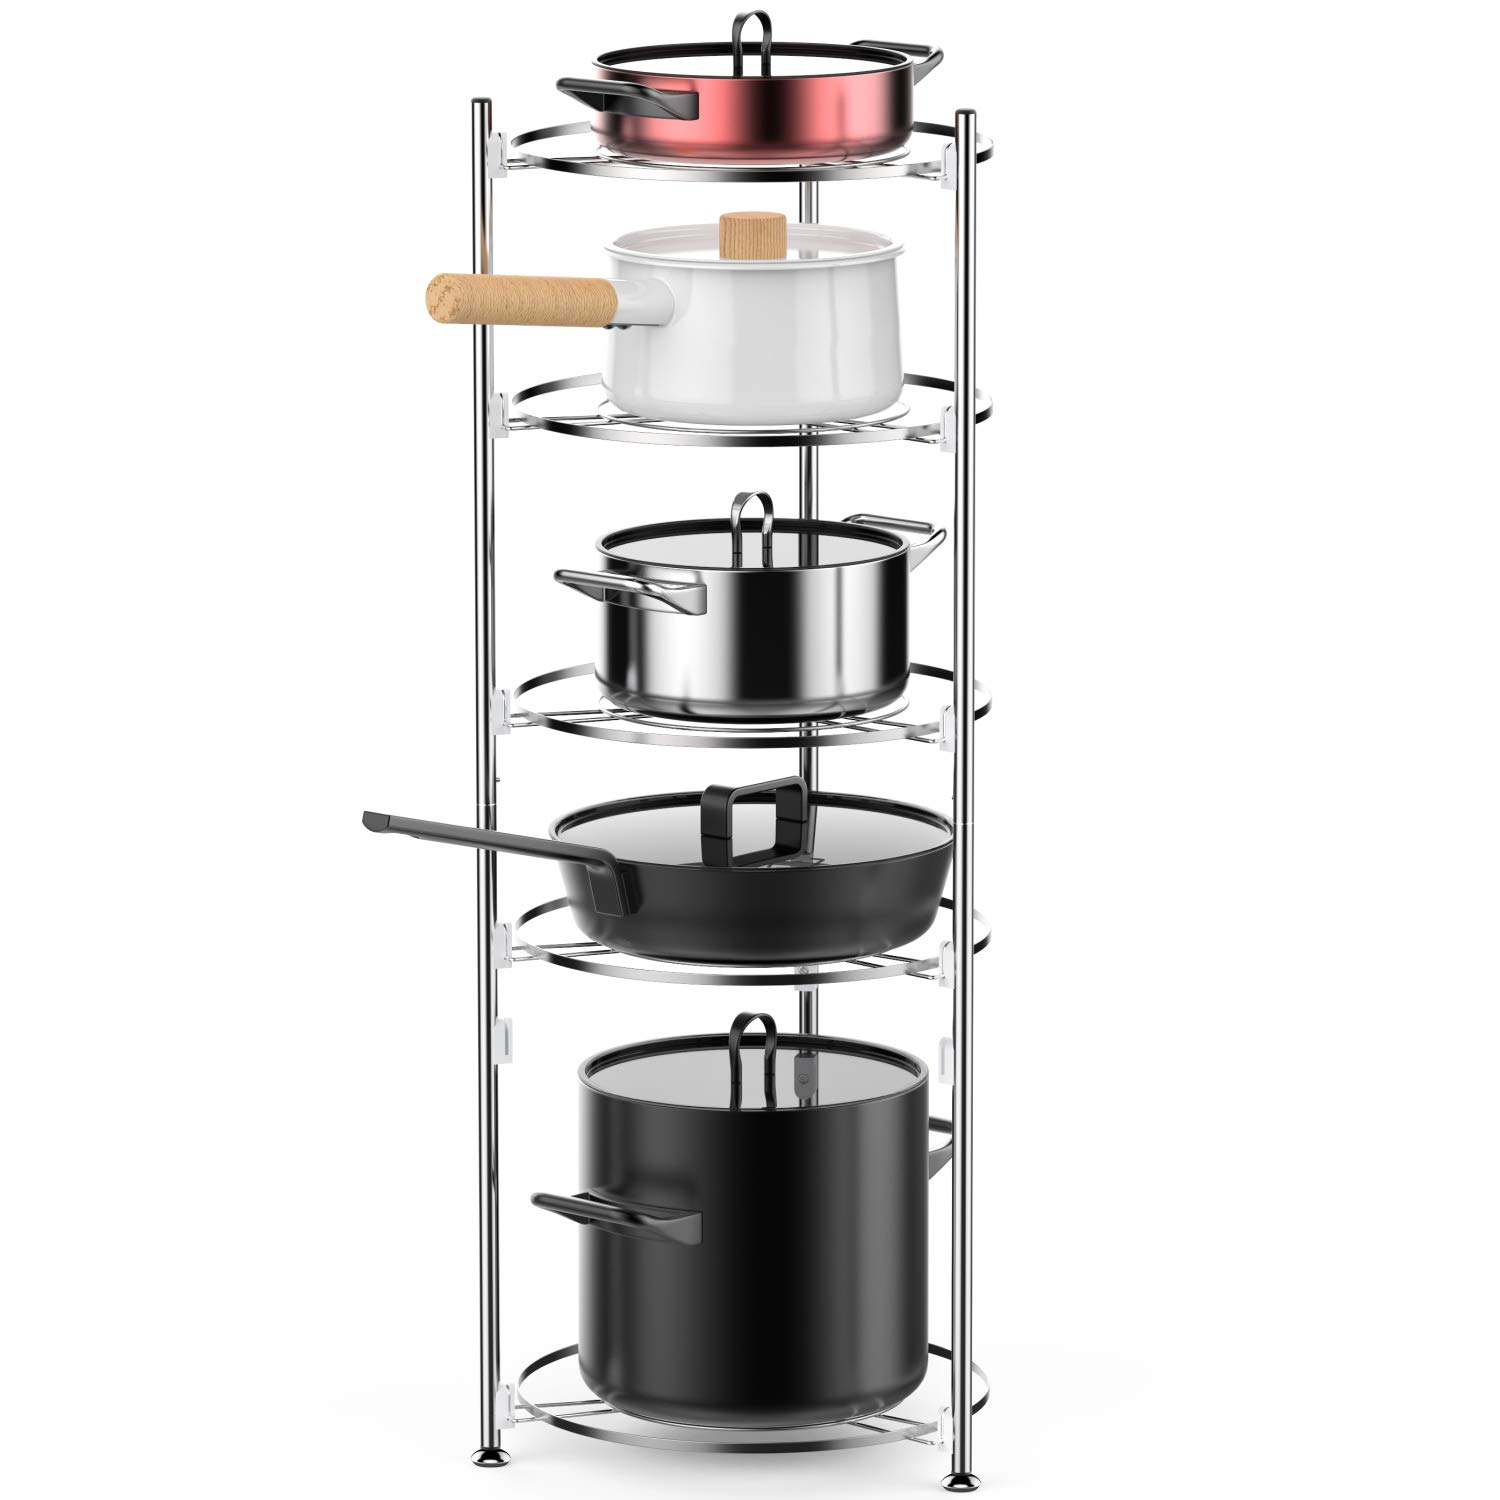 5 Tiers Cookware Stand, iSPECLE Kitchen Free Standing Rack Organizer for Pan and Pot, Easy to Install without Tool, Stainless Steel, Silver